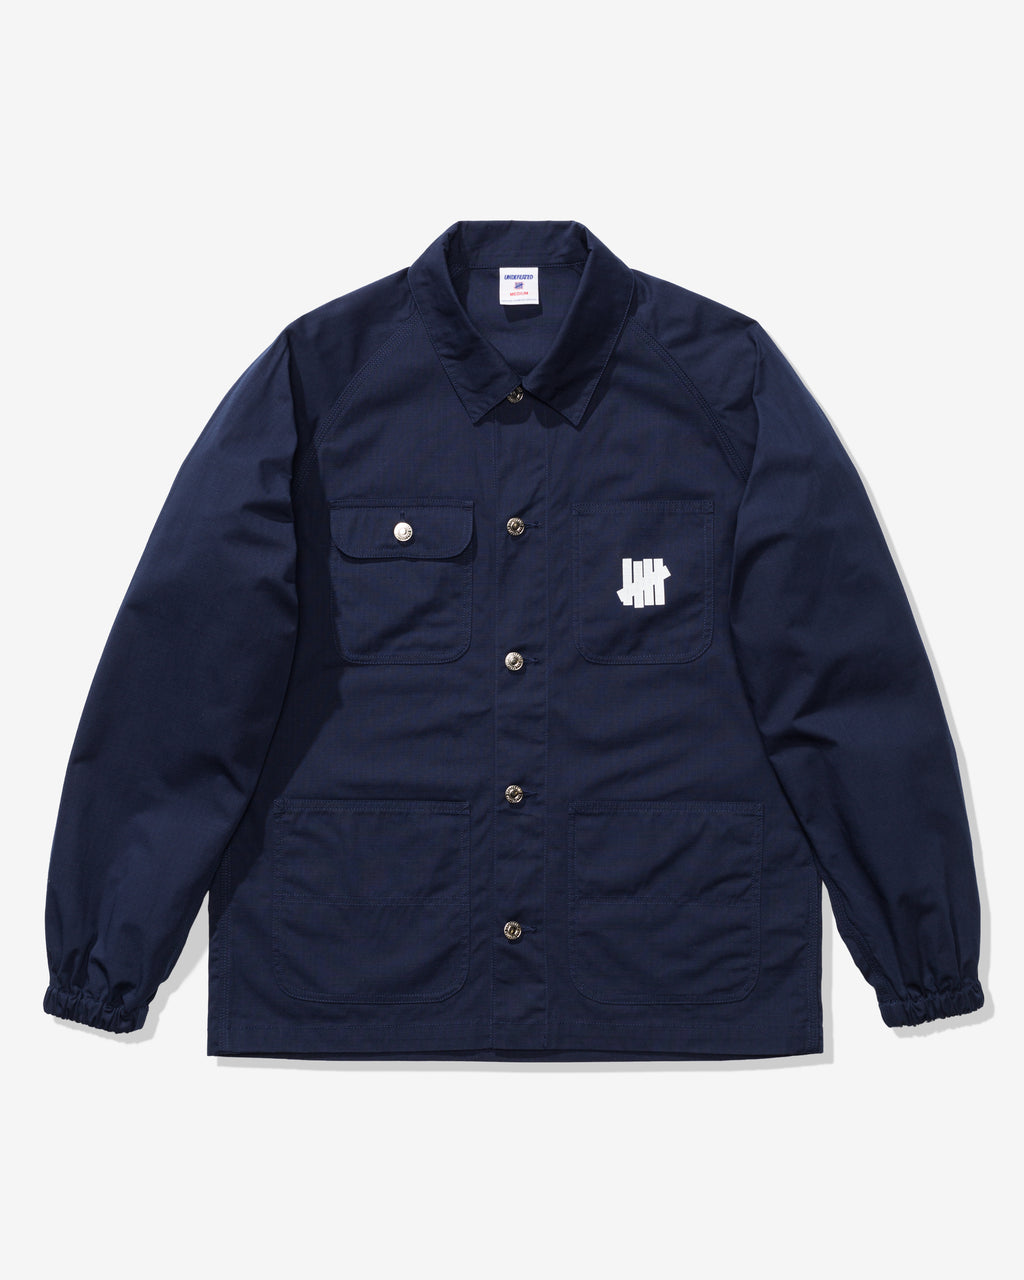 UNDEFEATED RIPSTOP CHORE JACKET - NAVY